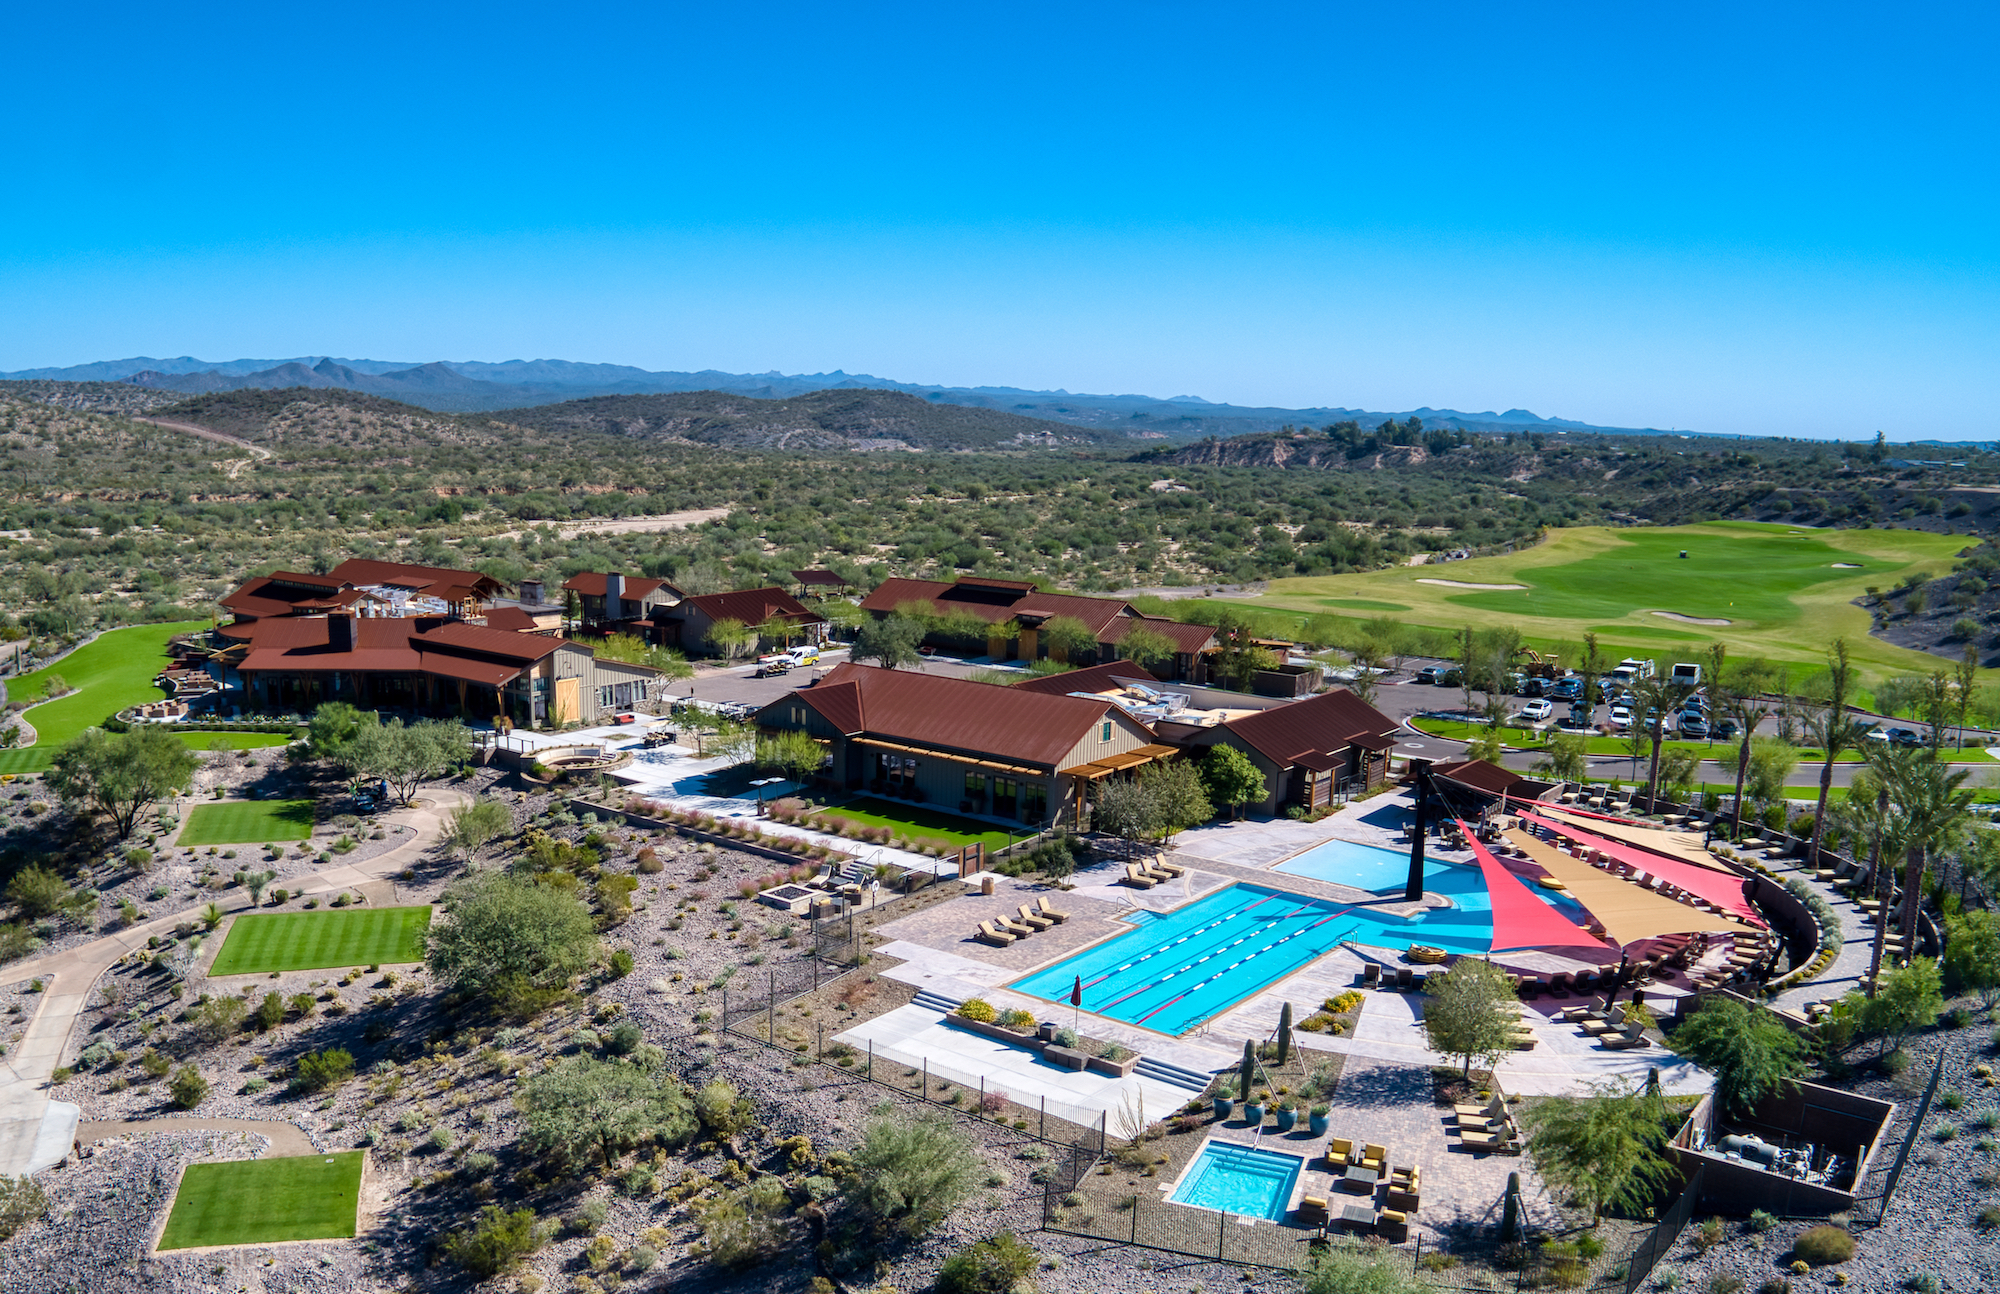 Wickenburg Ranch: An Oasis in the Desert